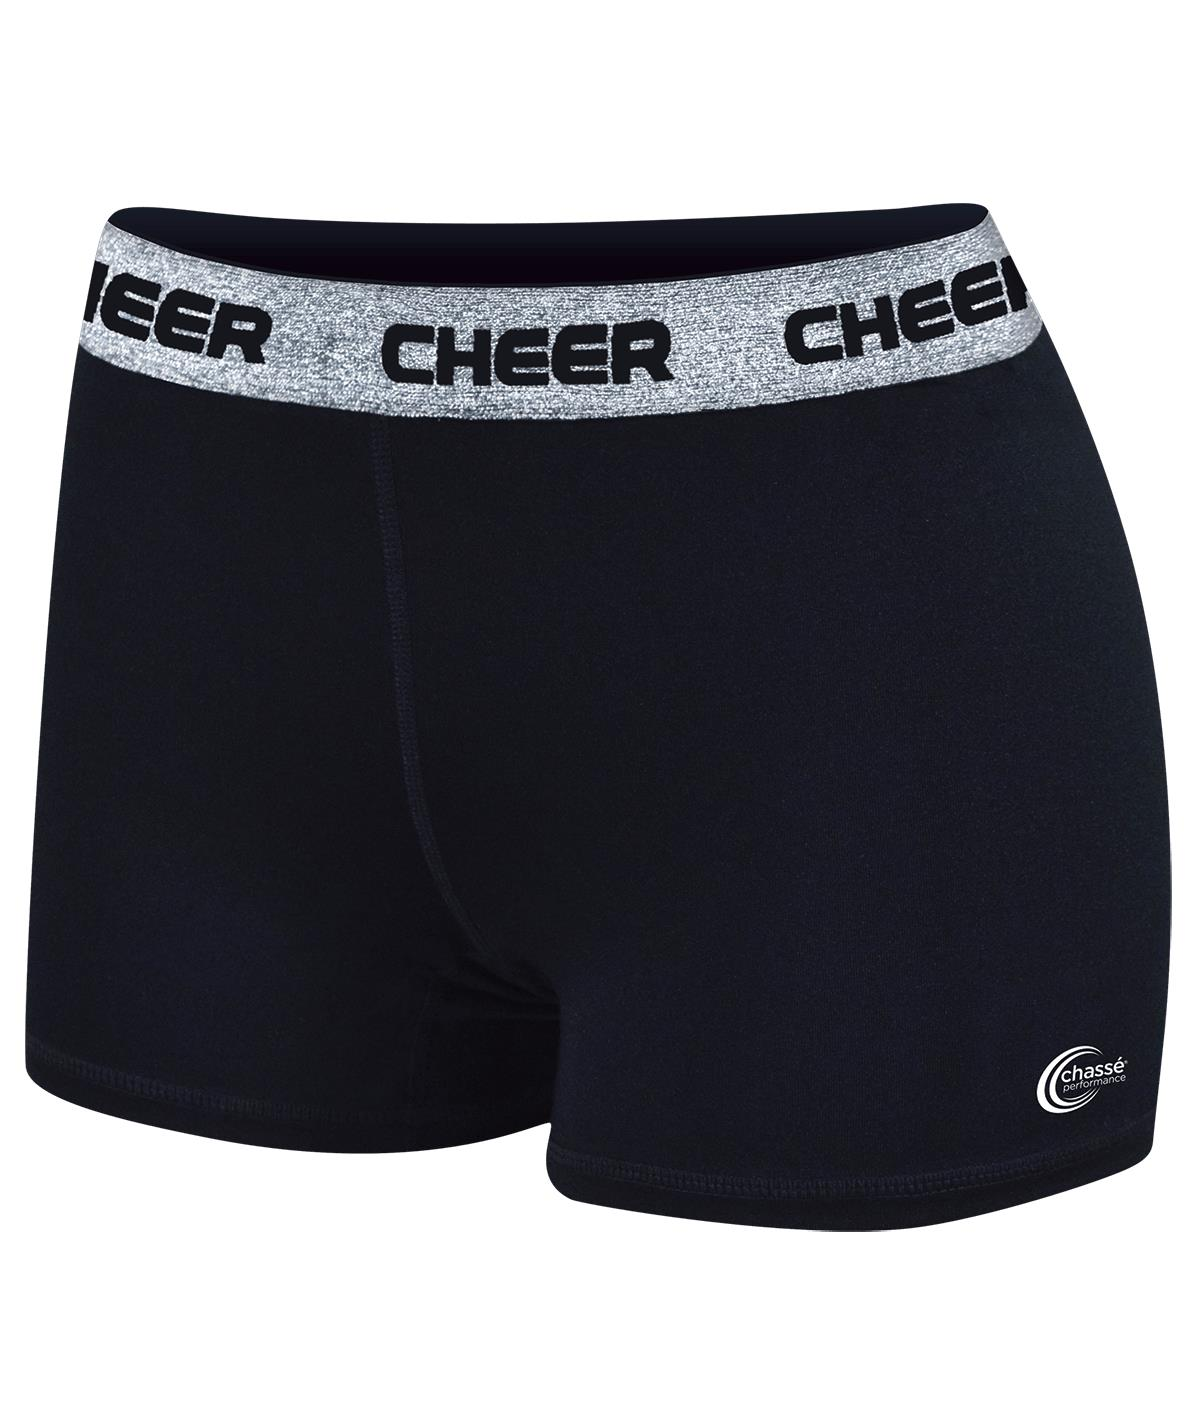 Chasse C-Prime Performance Short